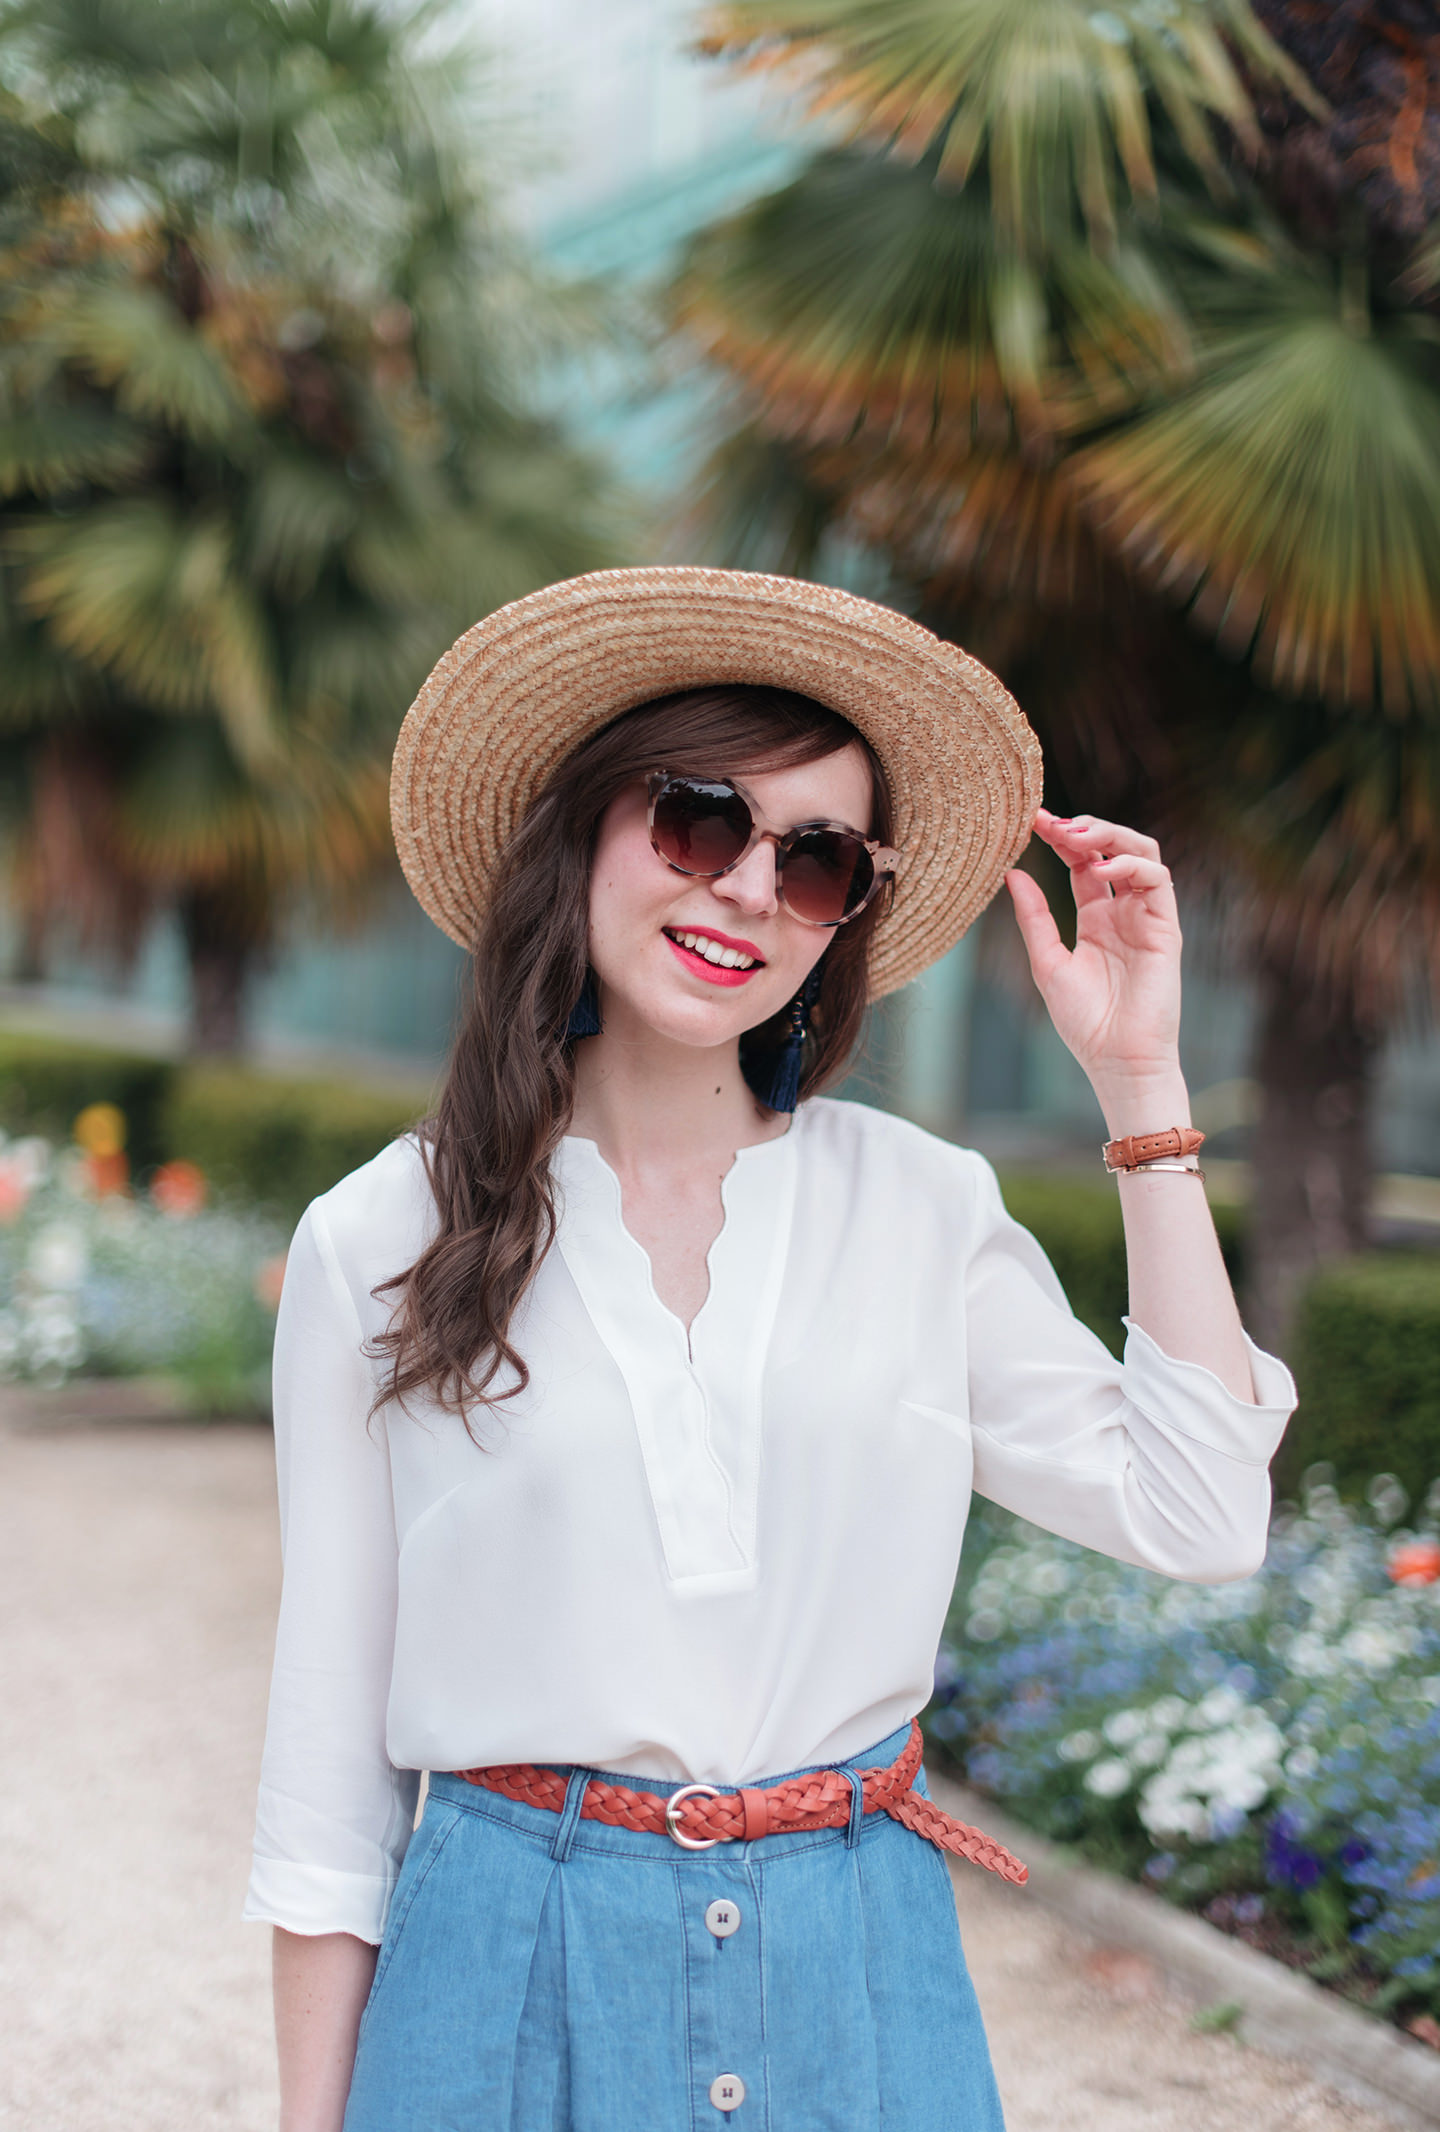 Blog-Mode-And-The-City-Looks-Jardin-Serres-Auteuil-Devernois-3